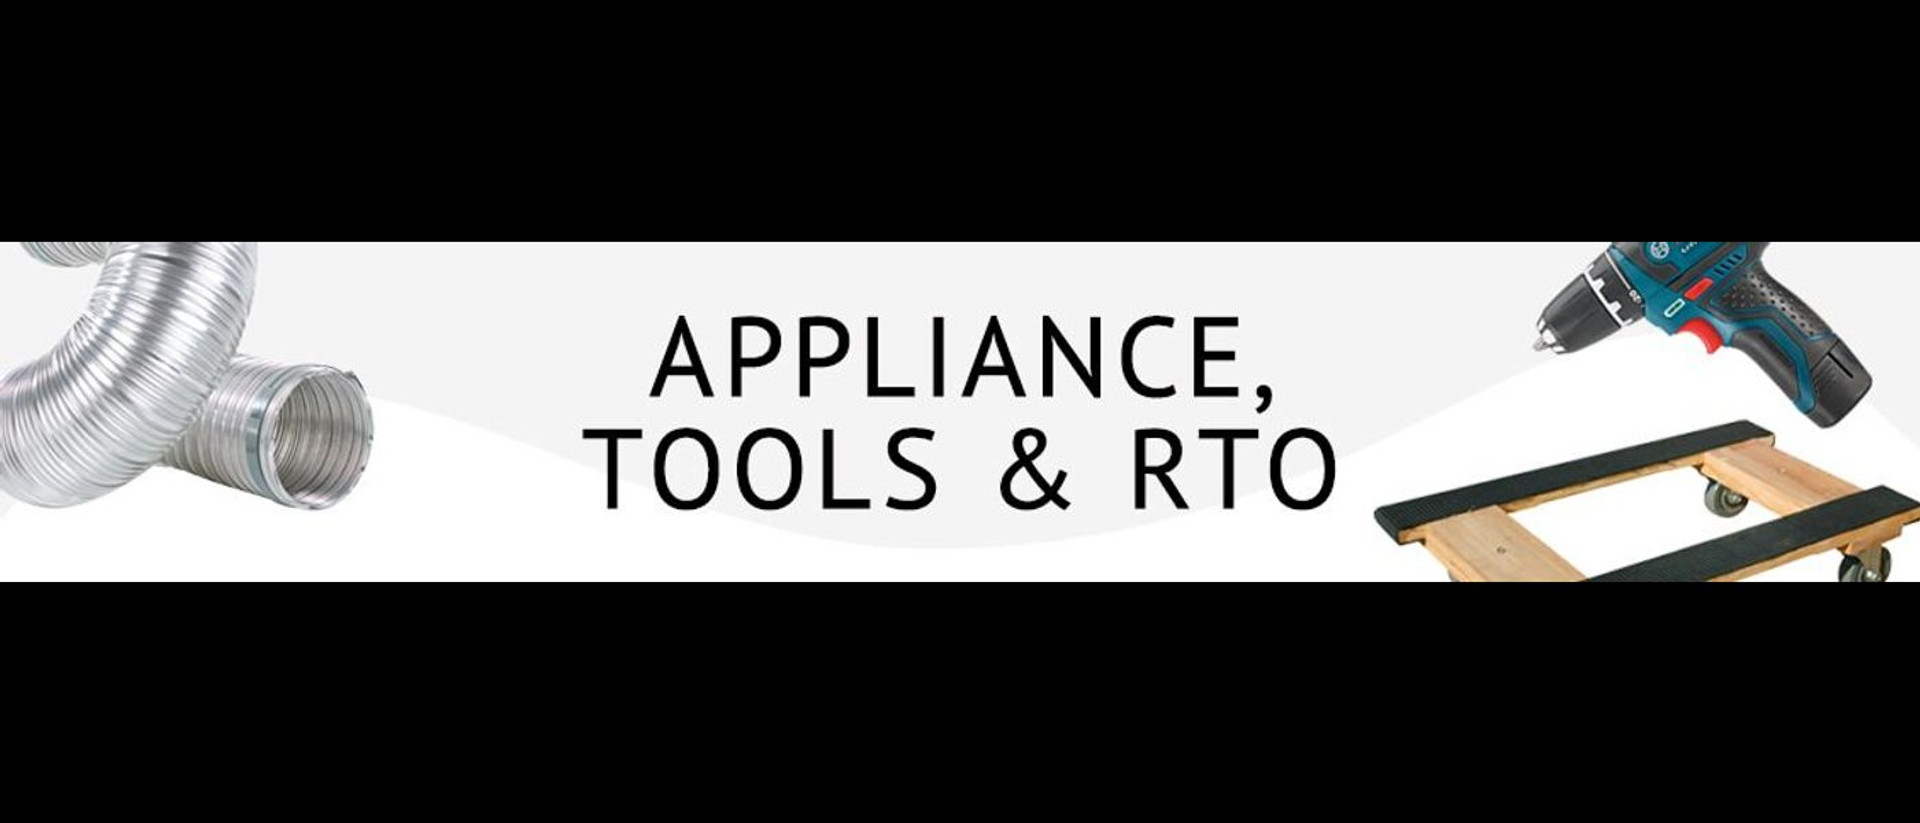 APPLIANCE ACCESSORIES, TOOLS & RTO Find everything needed to replace worn cords or finish installation on new appliances.